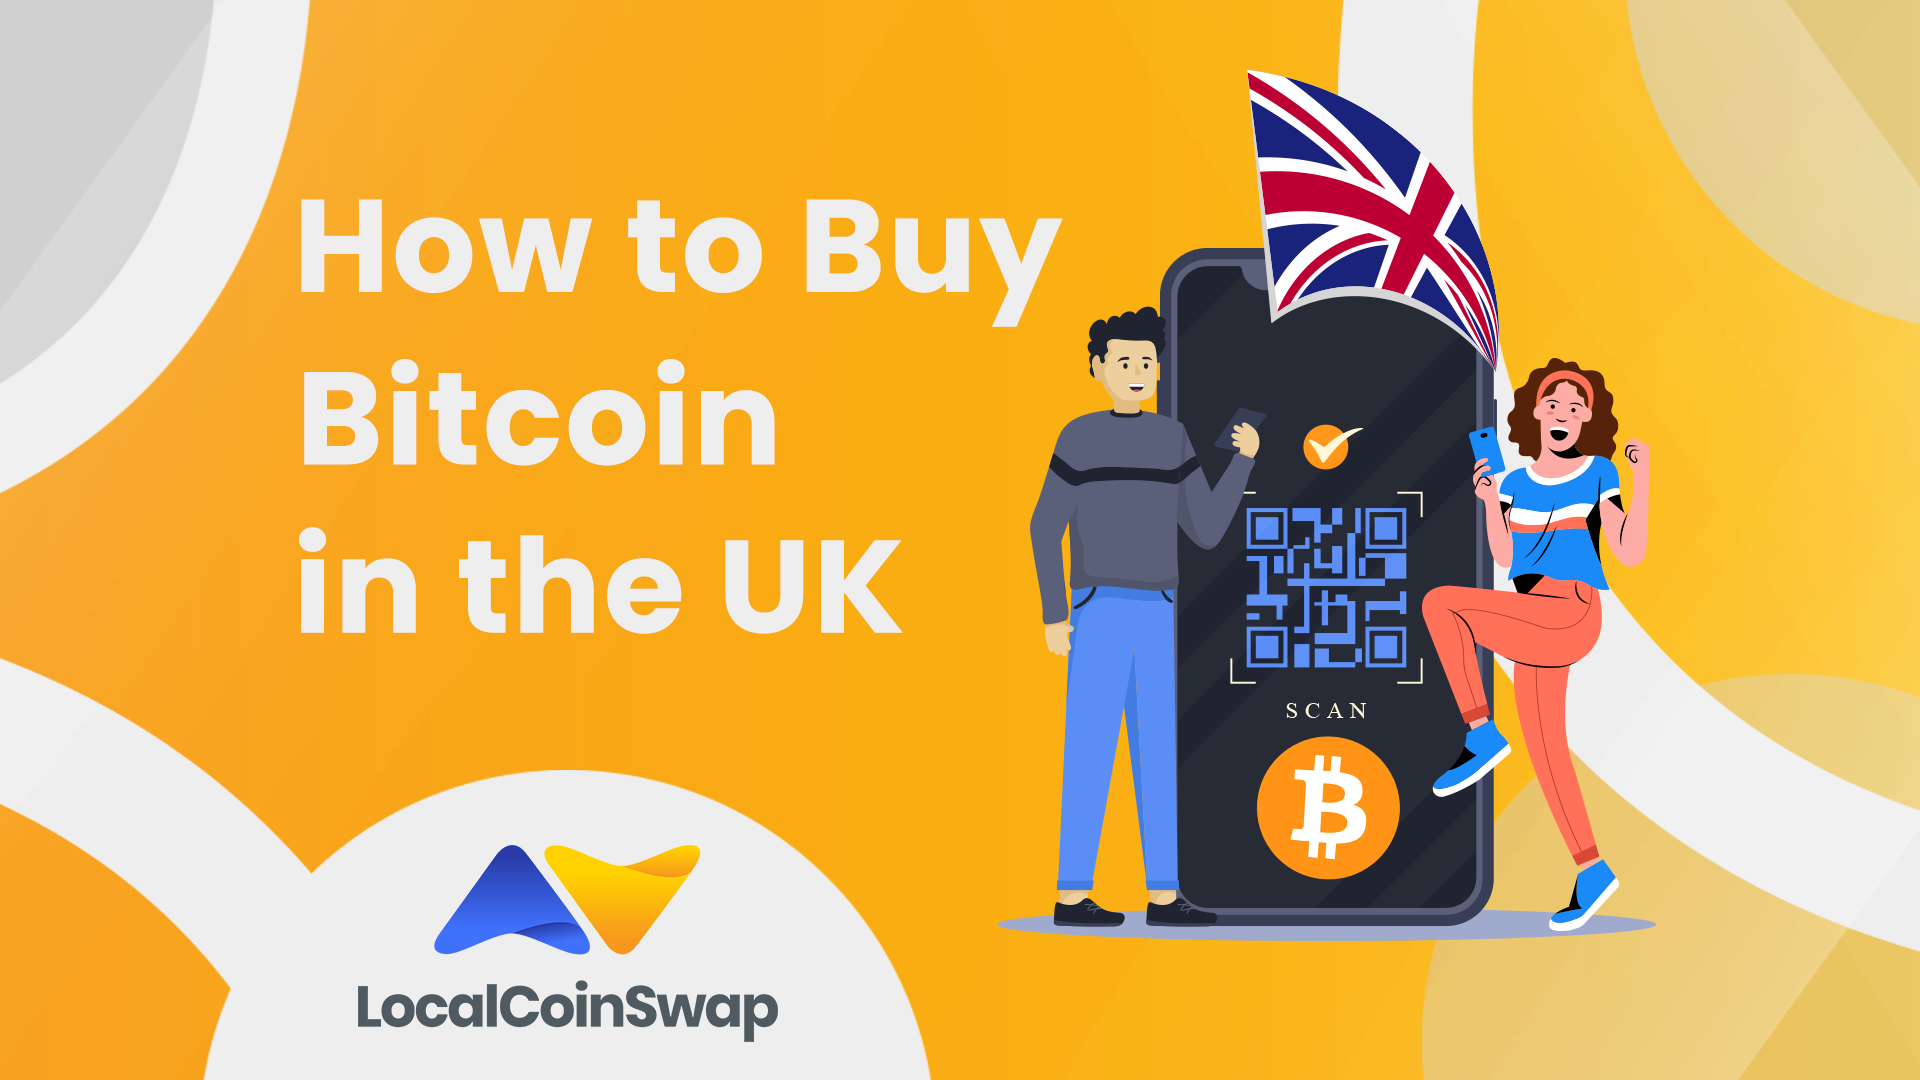 Find out How to Buy Bitcoin in the UK